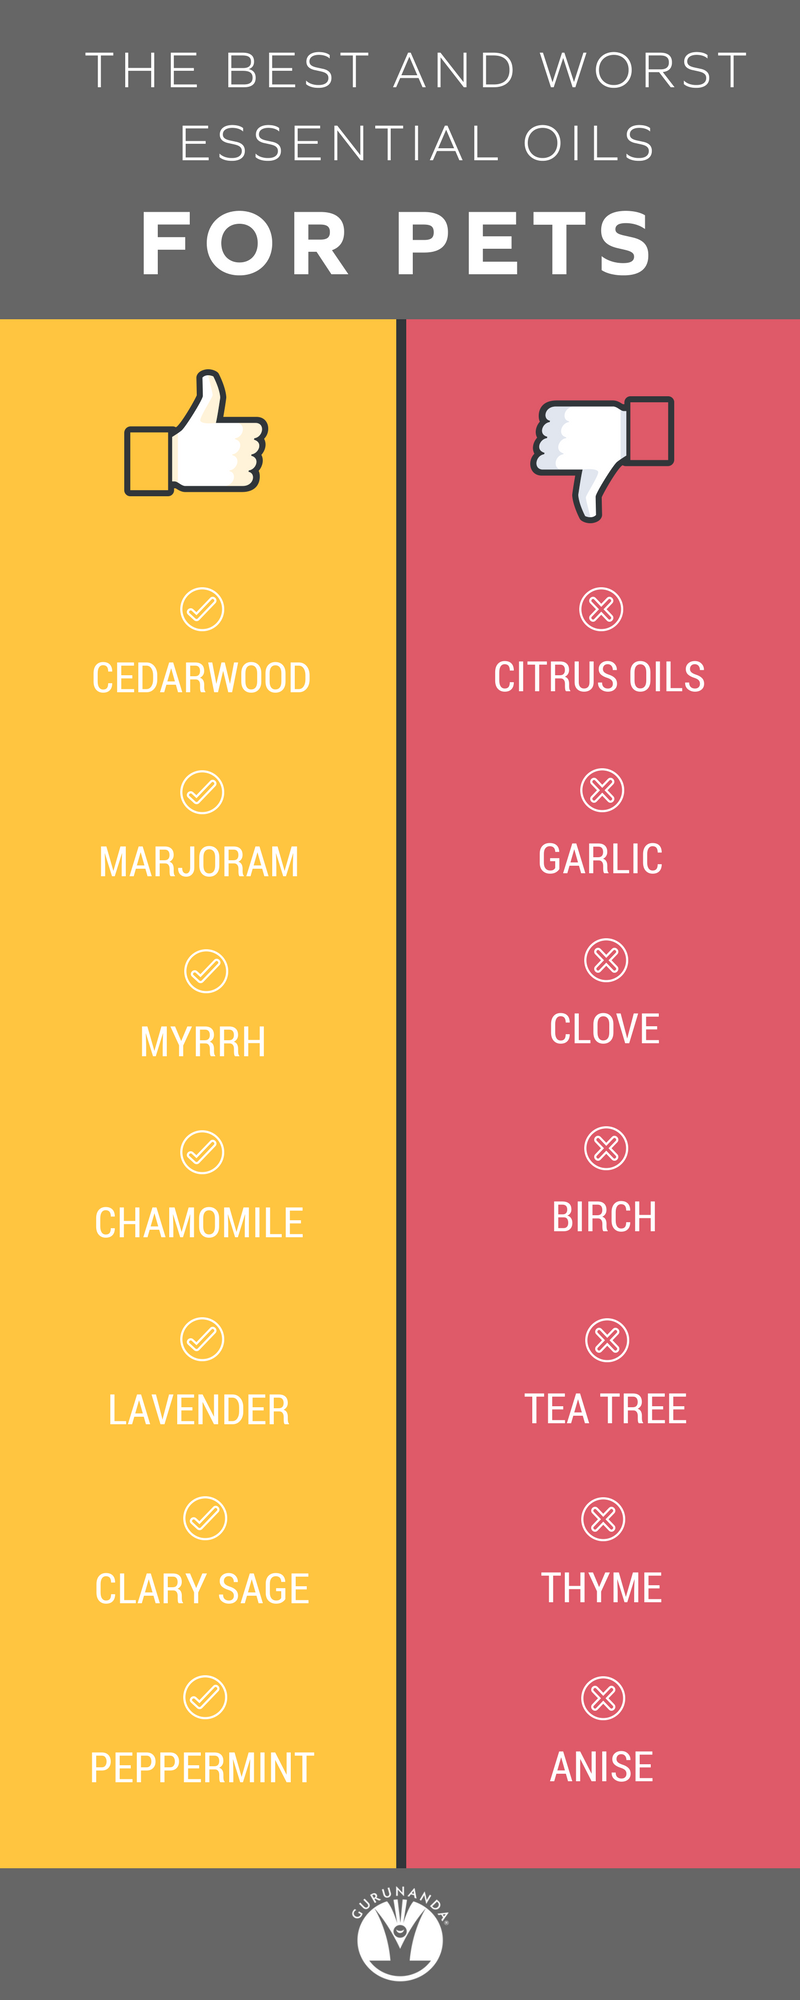 What Is The Best Essential Oil For Dog Skin